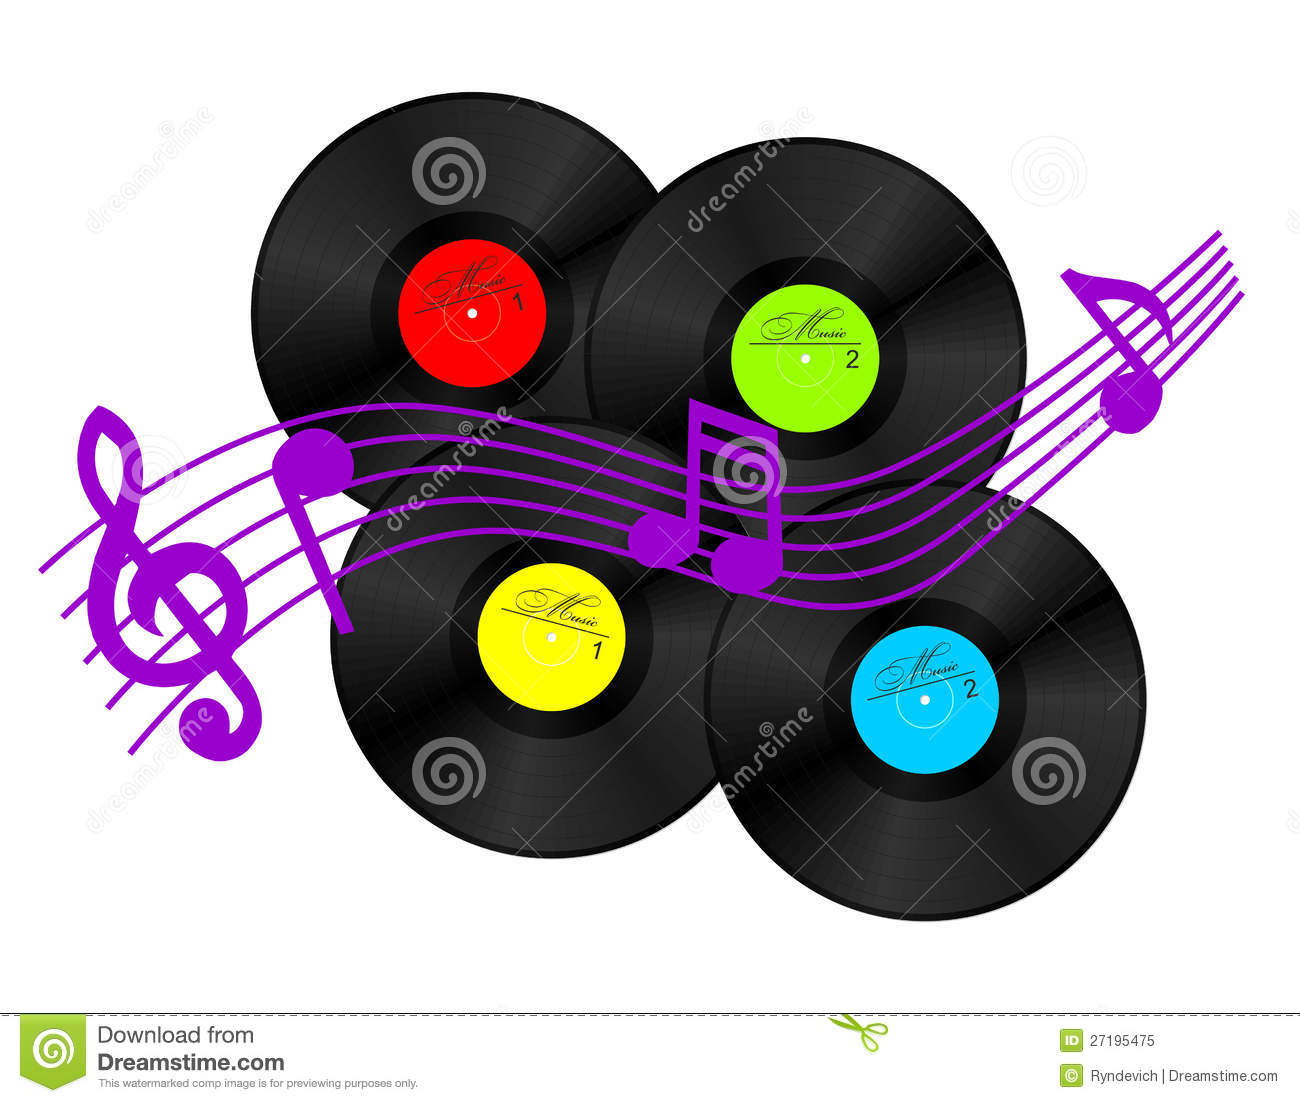 vinyl record stock vector illustration of musical  disco free music note clipart border free music notes clip art images